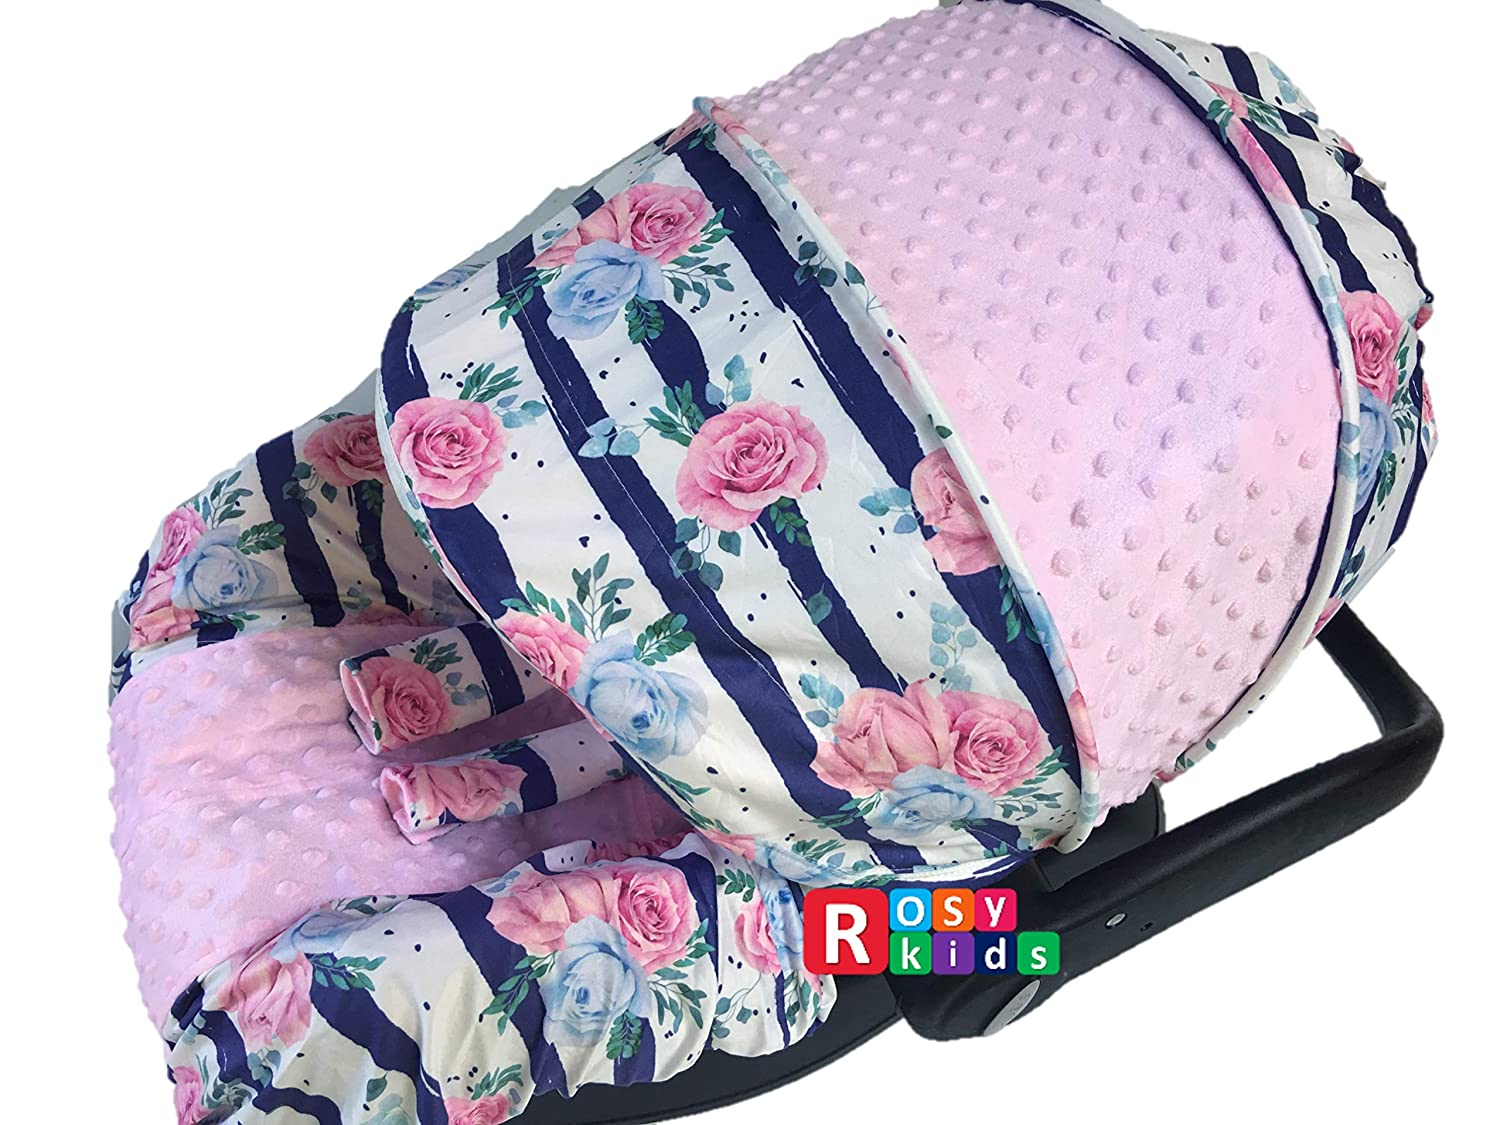 Rosy Kids Infant Carseat New York Mall Cover Canopy Ca 3pc Caboodle Whole Brand new Baby